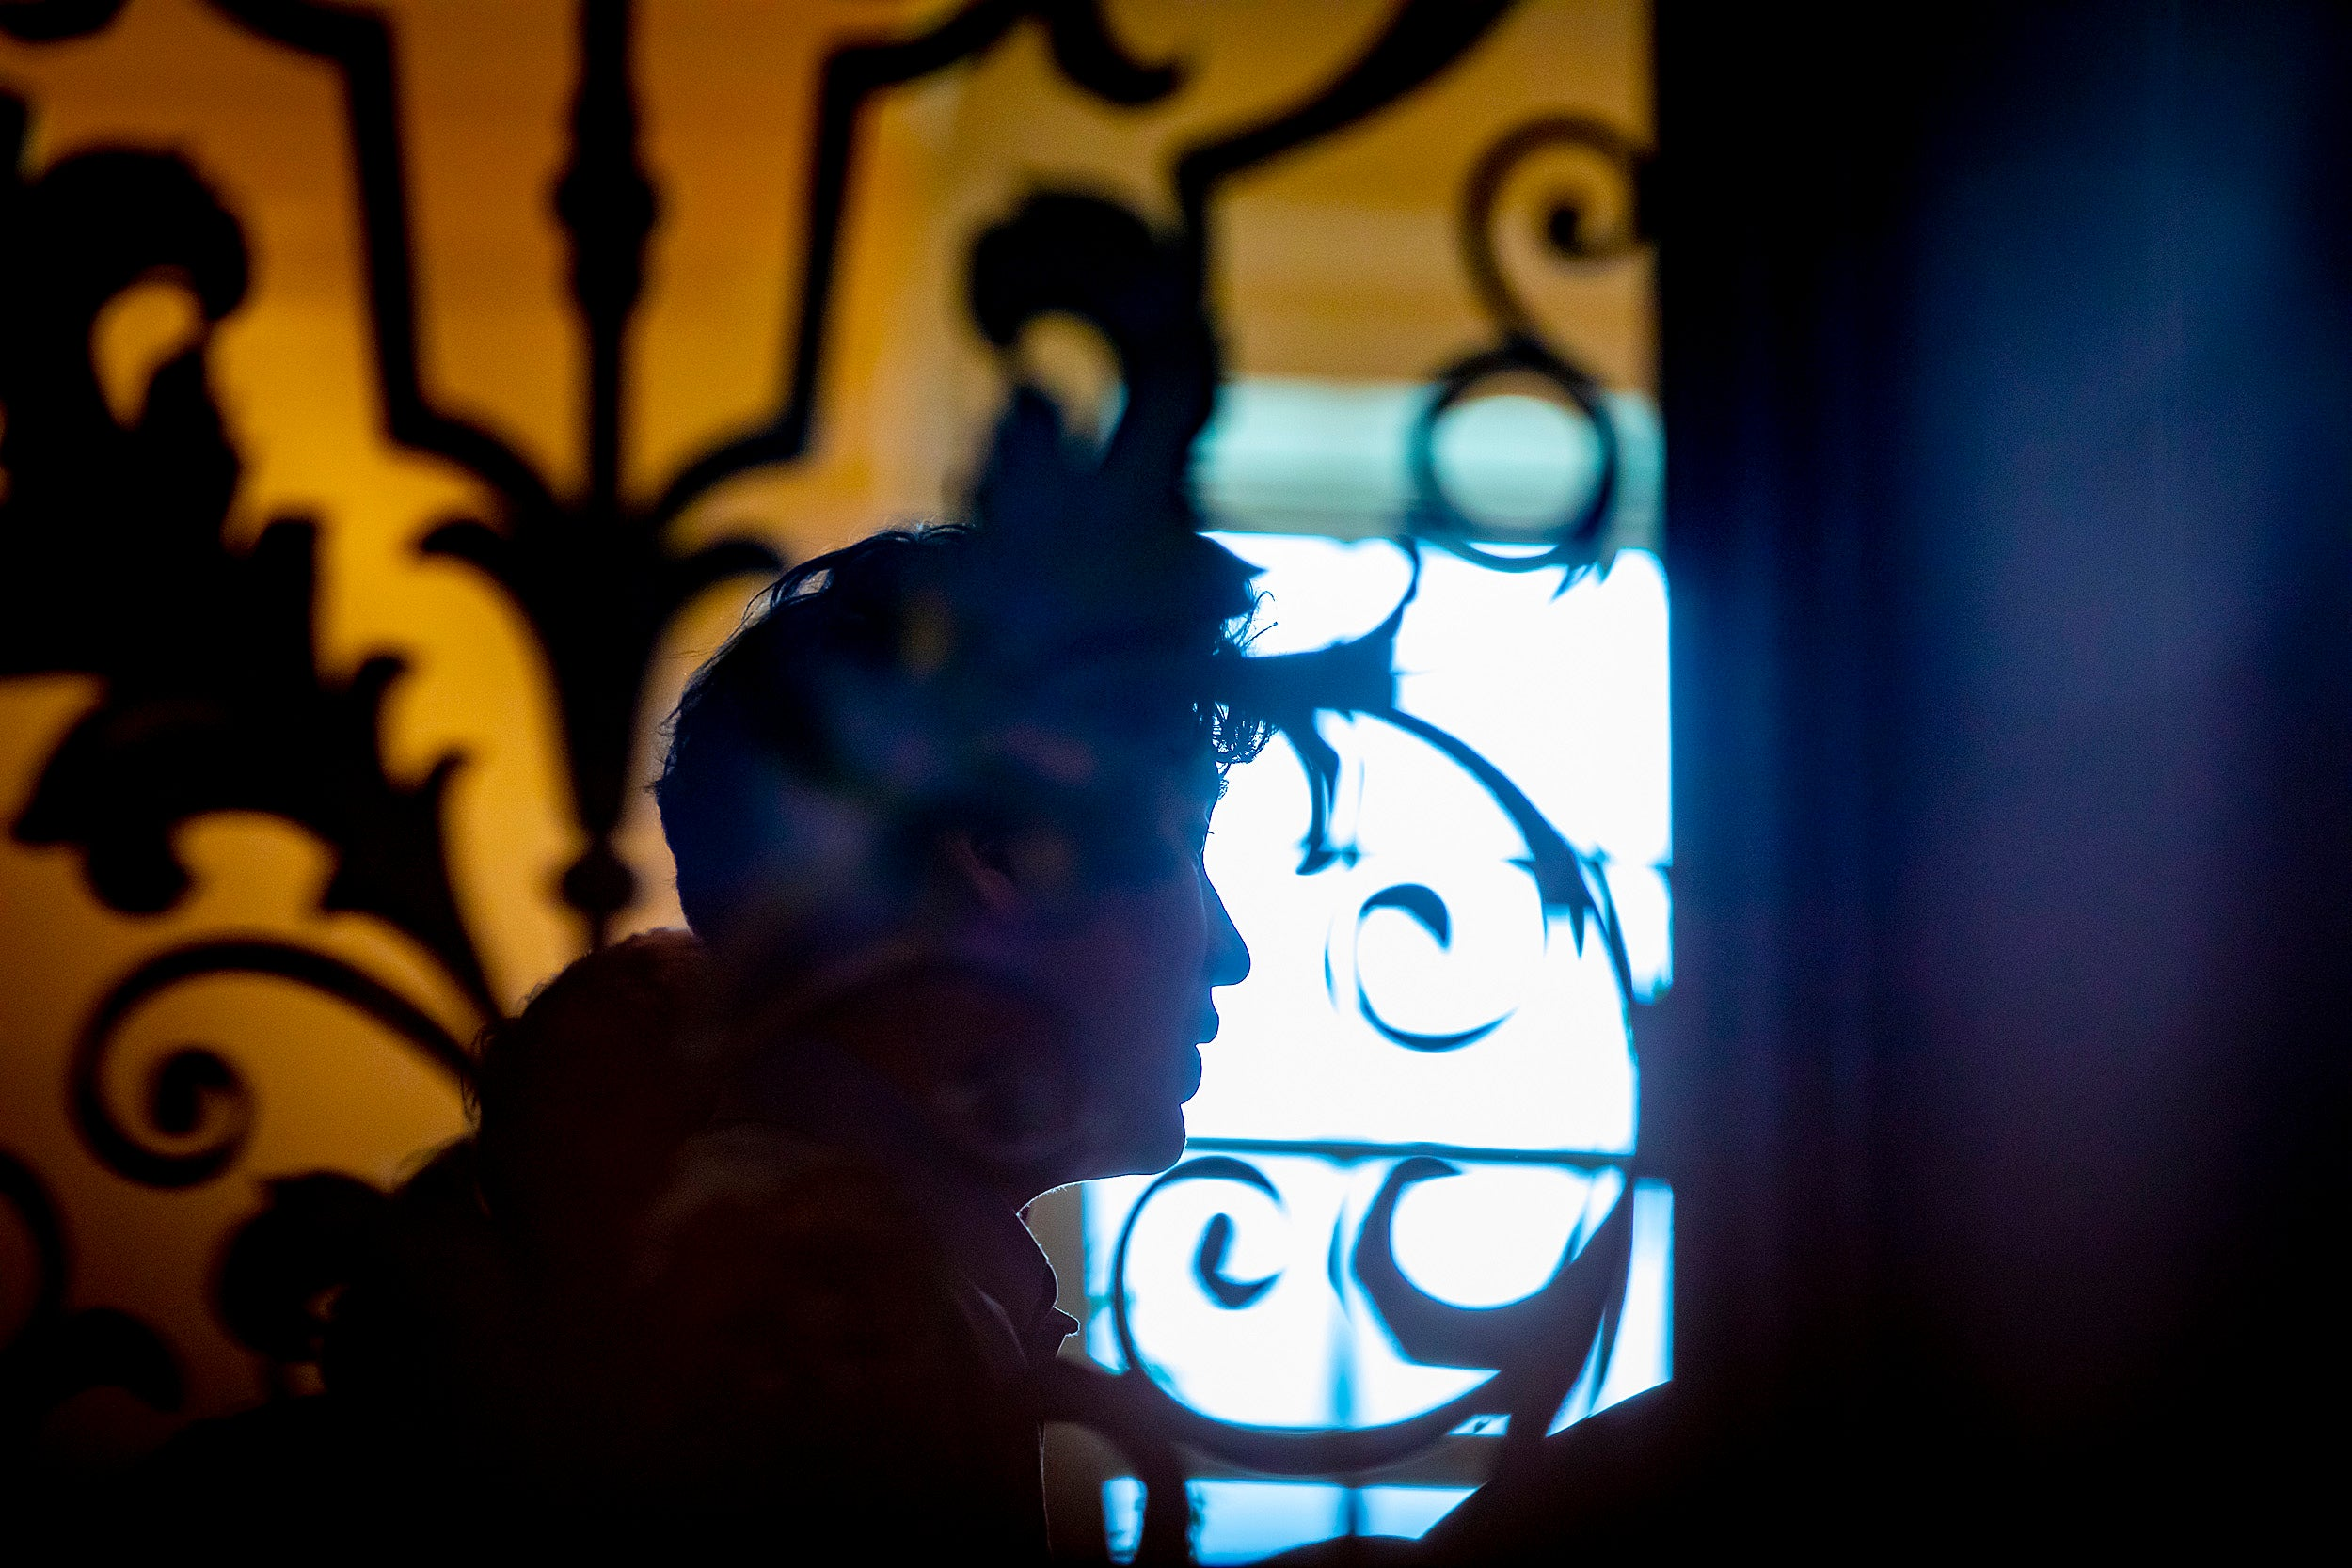 Silhouette of choir member framed by wrought iron in Memorial Church.